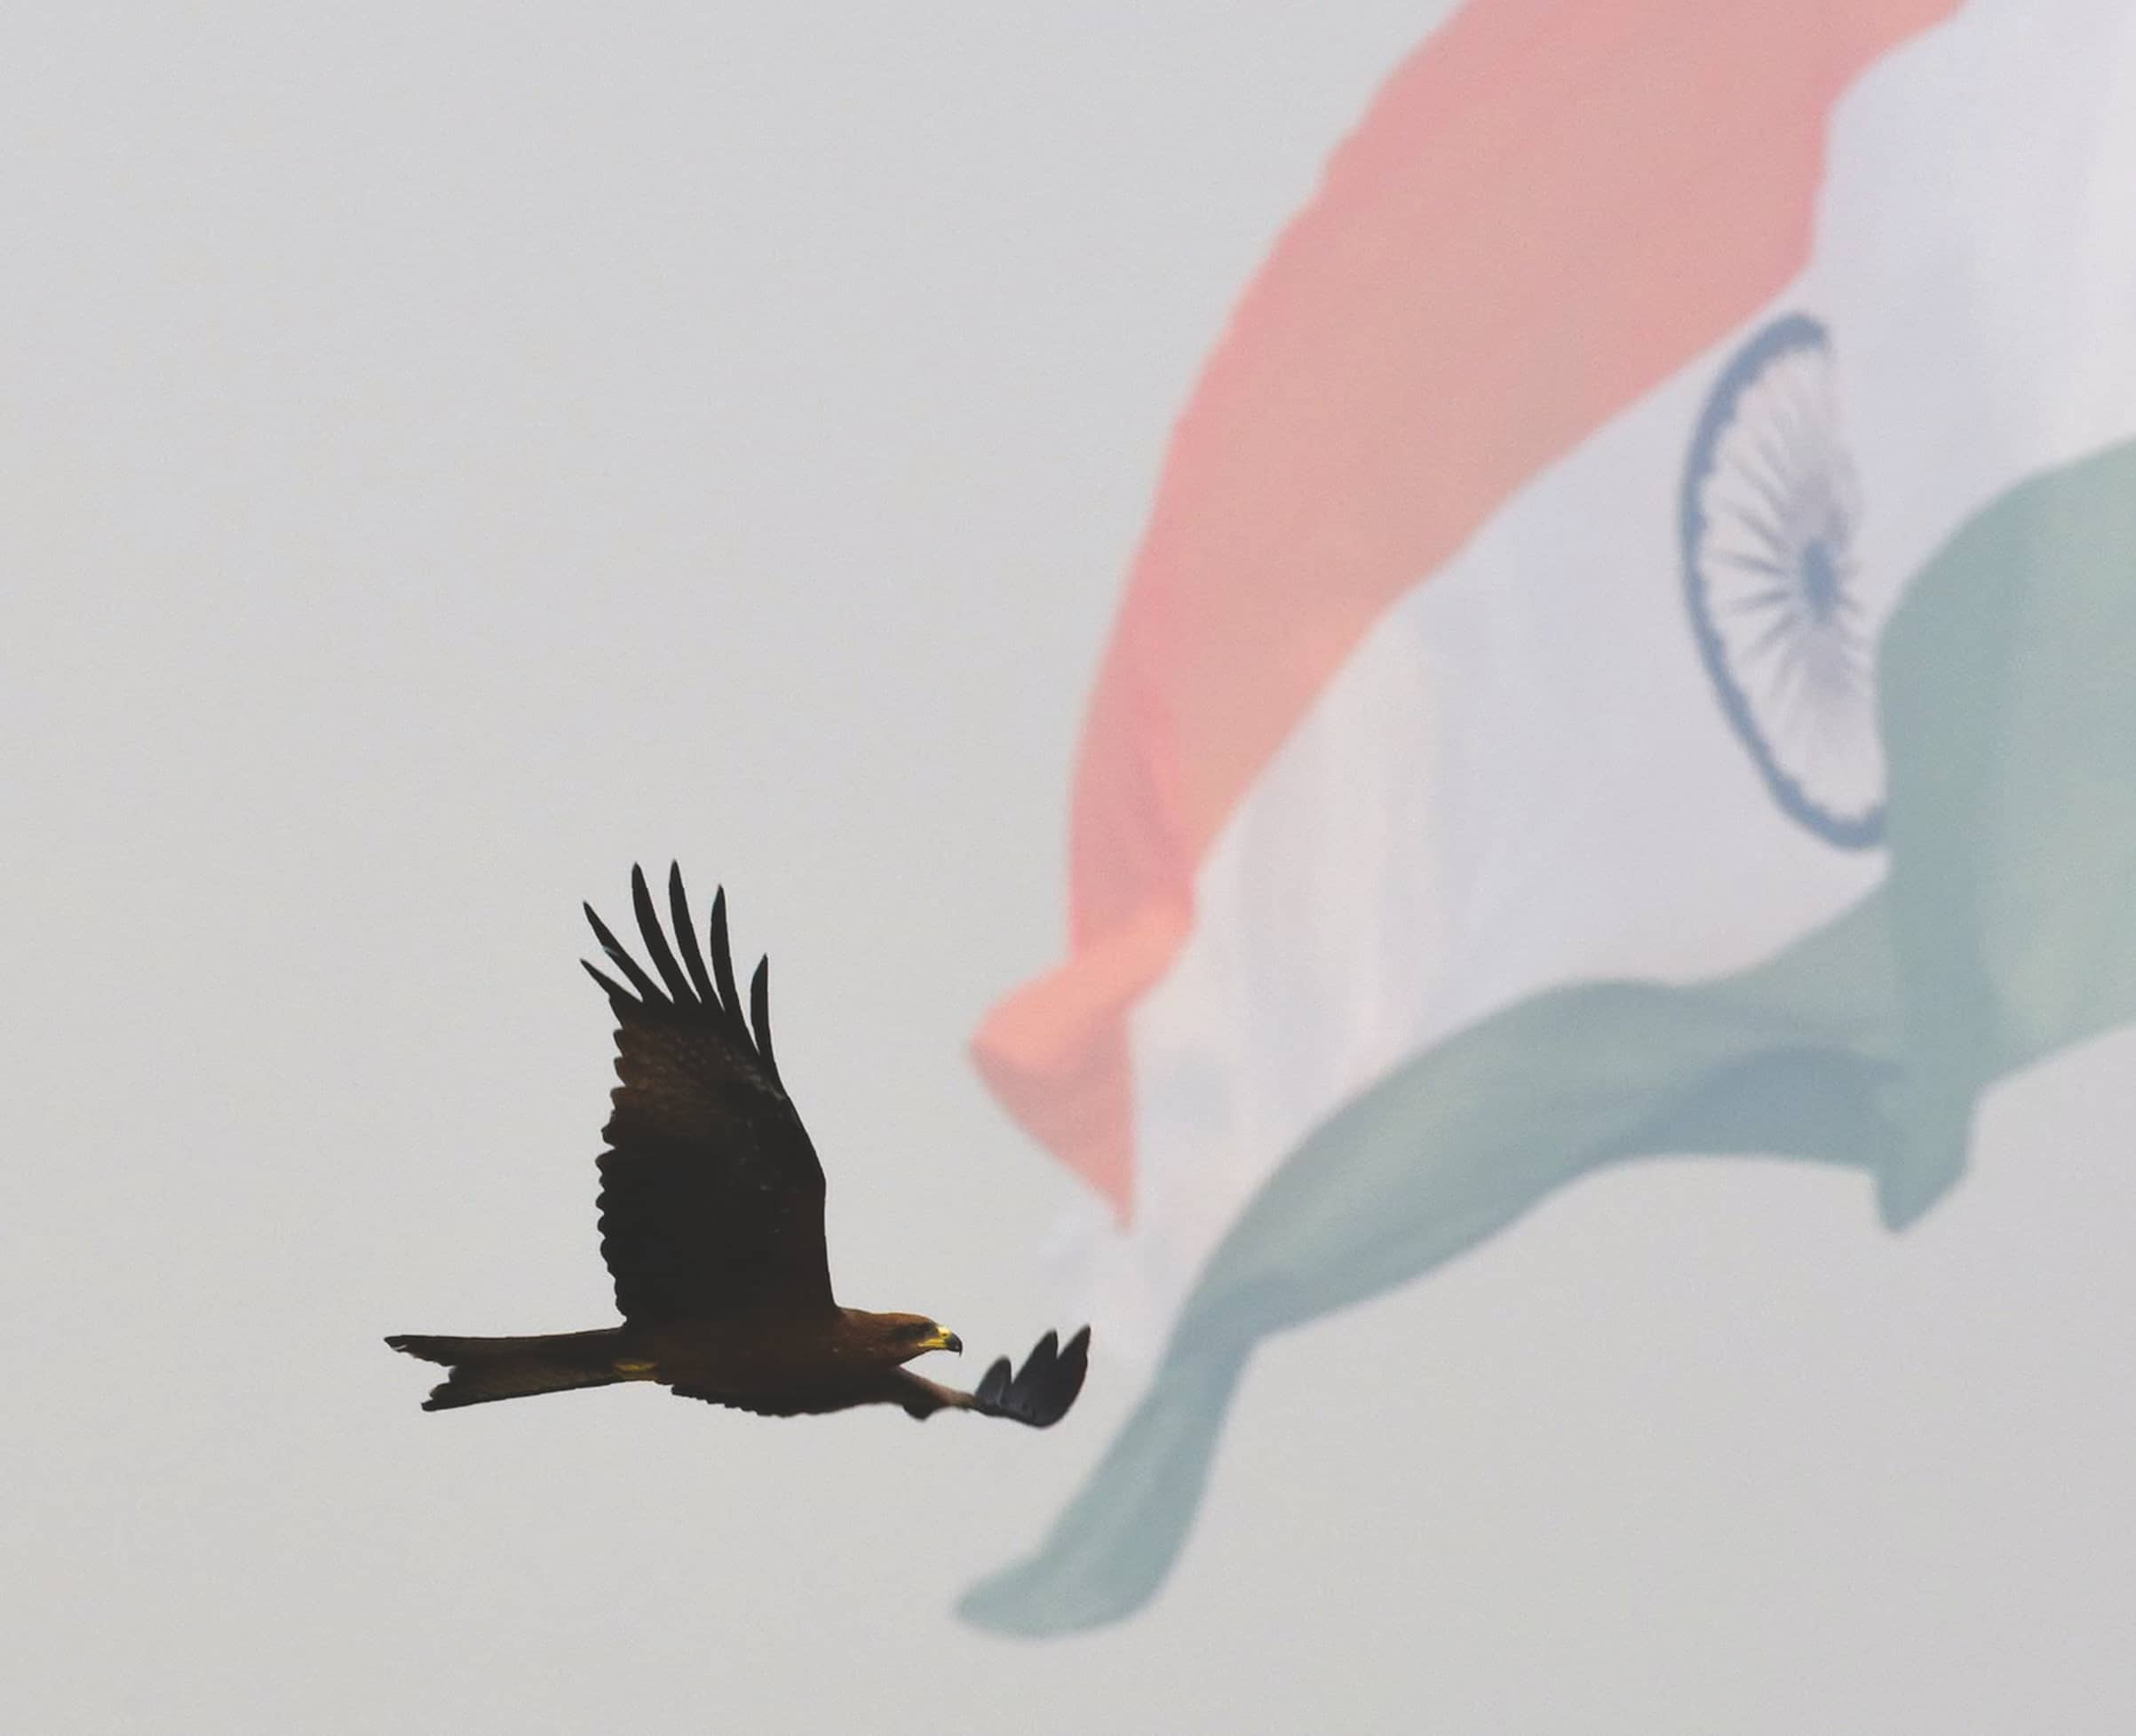 INDIA AS AN EMERGING GLOBAL POWER CHALLENGES AND PROSPECTS